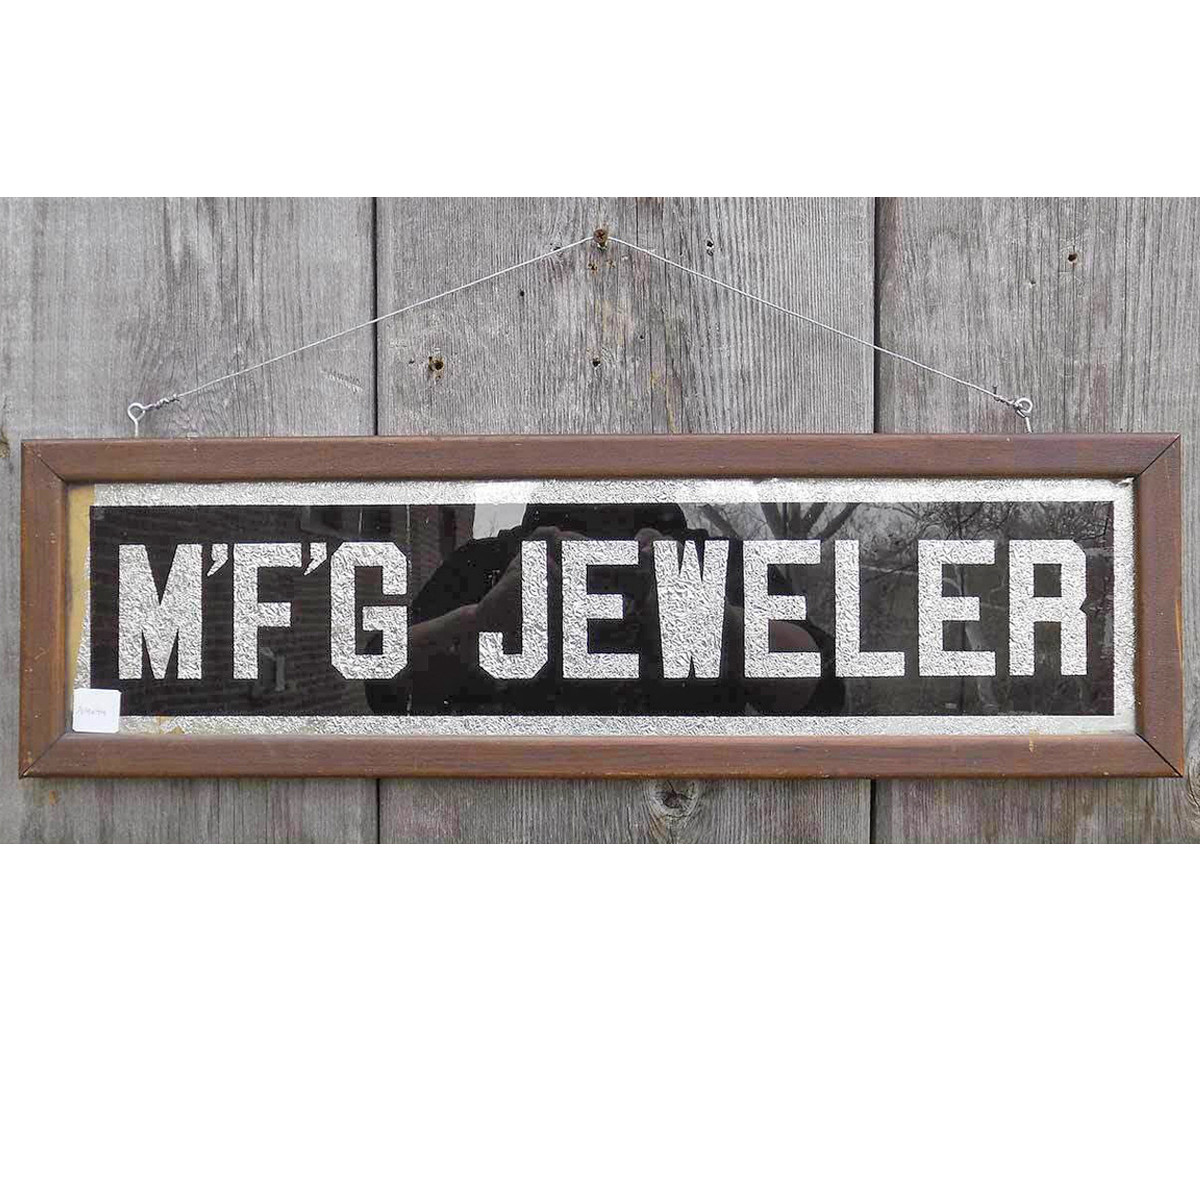 """A14044 - Antique Early Century Trade Sign """"MFG Jeweler"""""""